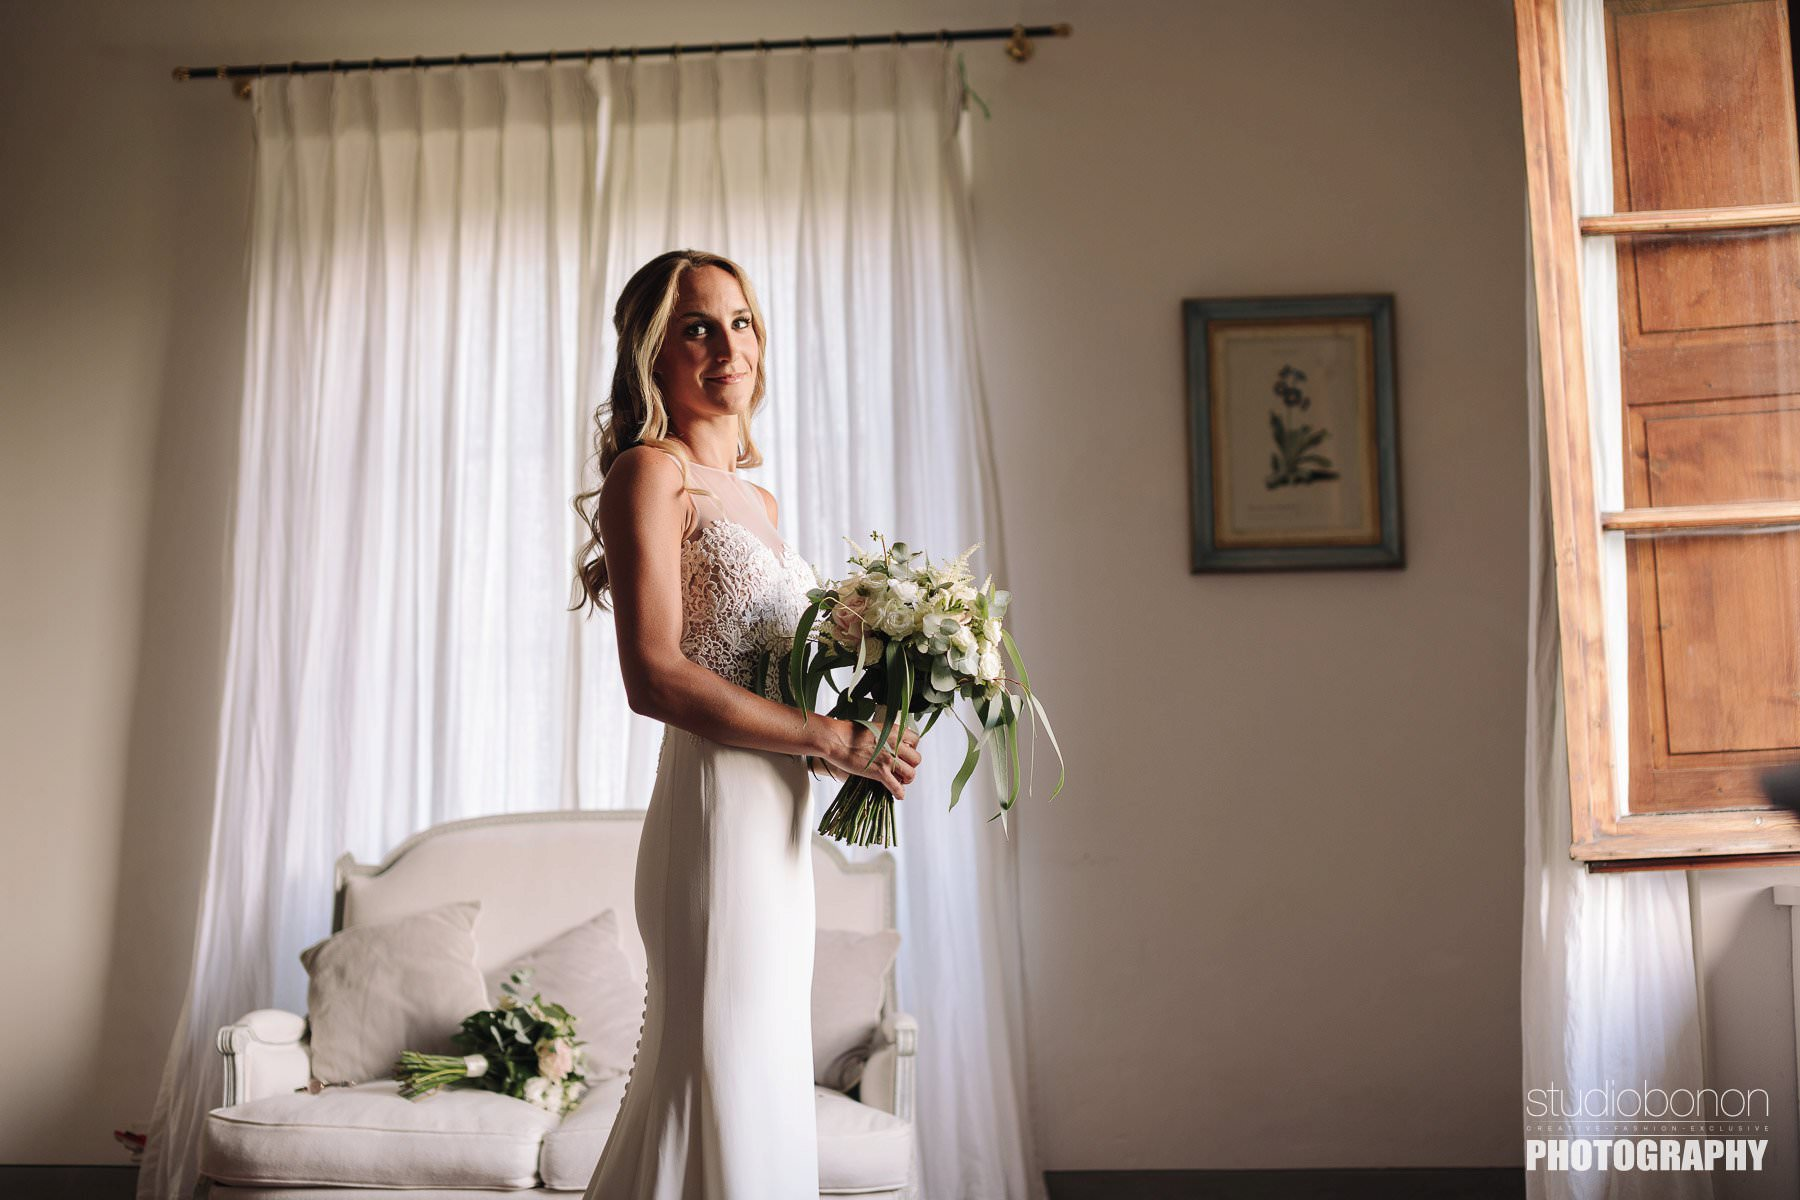 Beautiful bride in Tuscan Villa almost ready for wedding ceremony